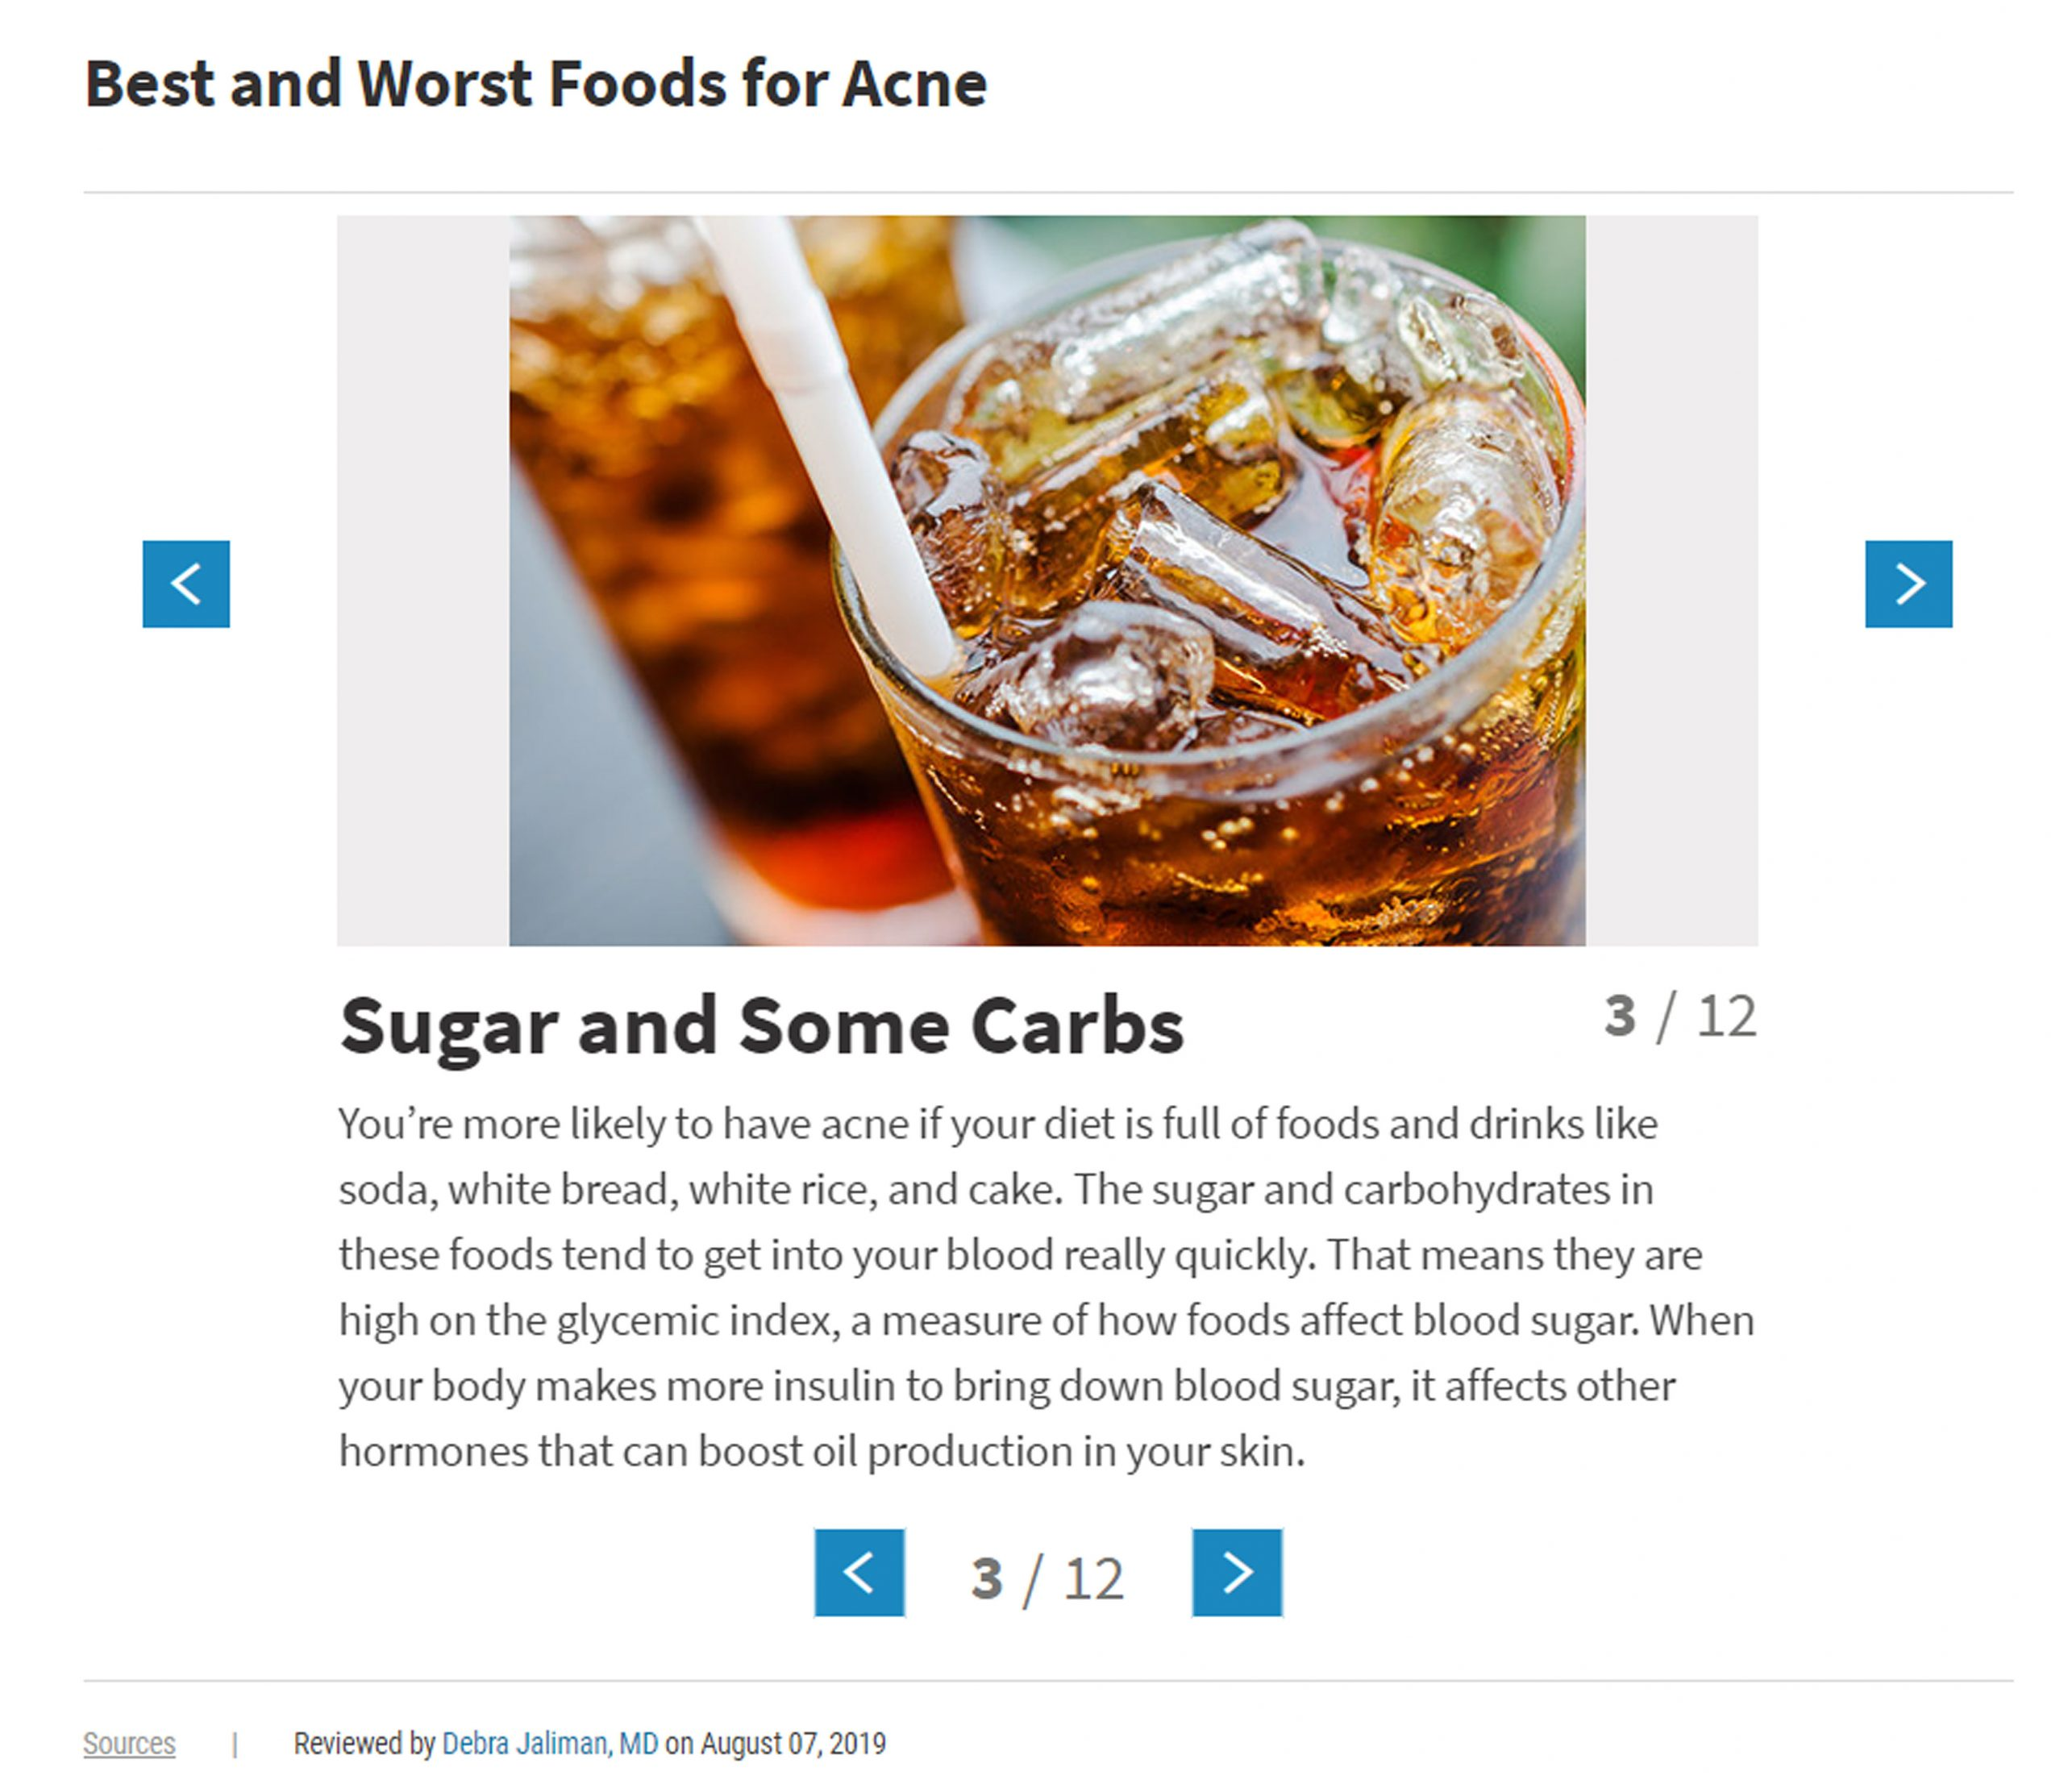 Best and worst foods for acne. Are WebMD right? What foods are bad for your skin? Click to read more.